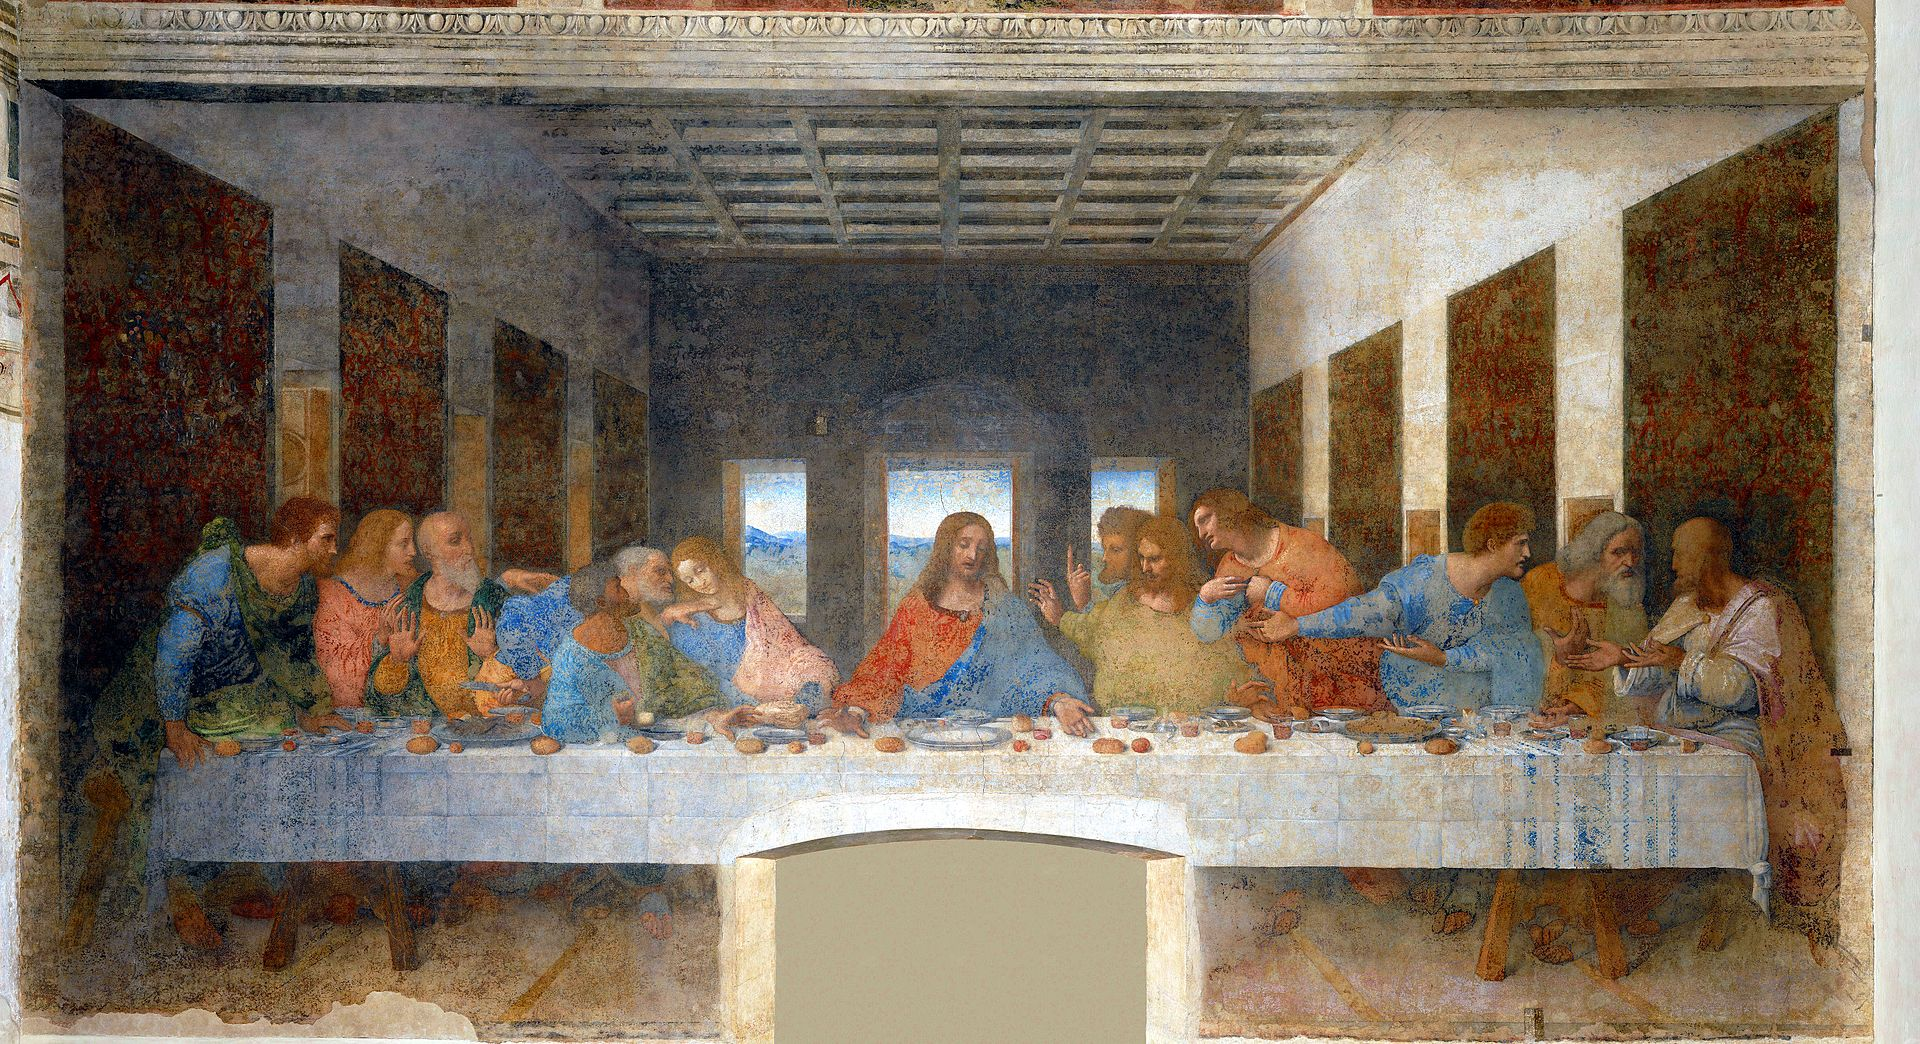 Última_CenaII La Cène The Last Supper-Leonardo da Vinci